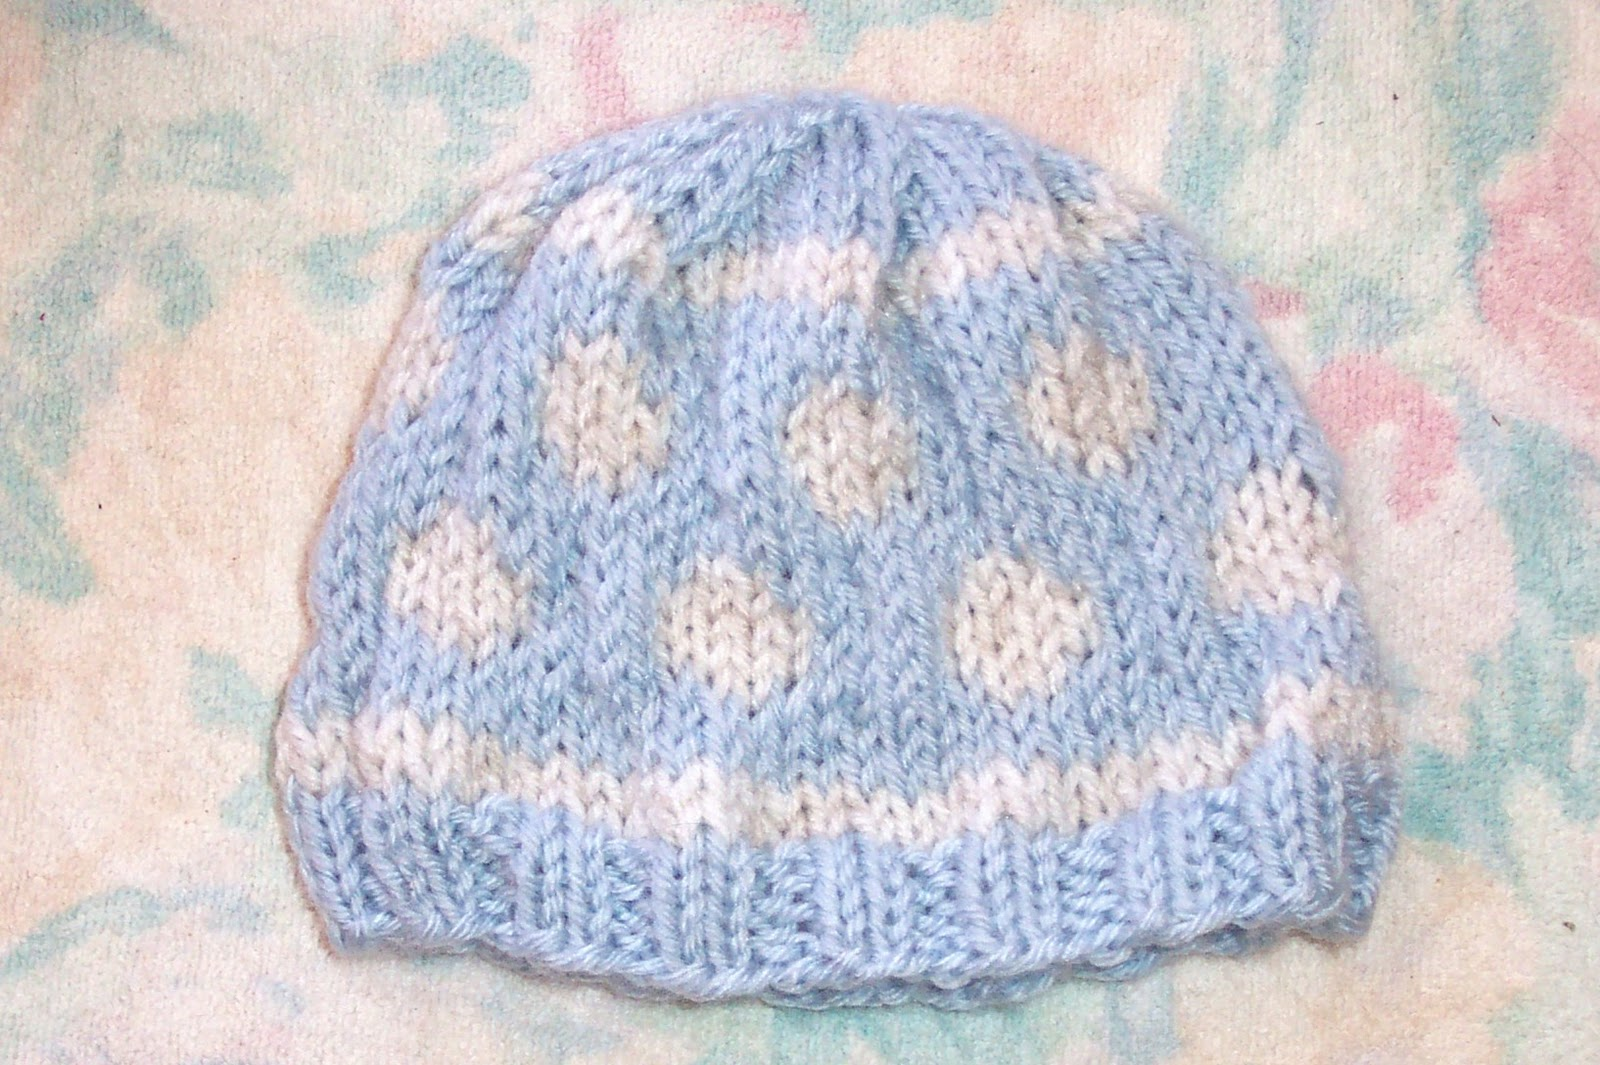 Crochet And Knitting Patterns : SmoothFox Crochet and Knit: SmoothFoxs Baby Bubbles Knit Hat - Free Pattern